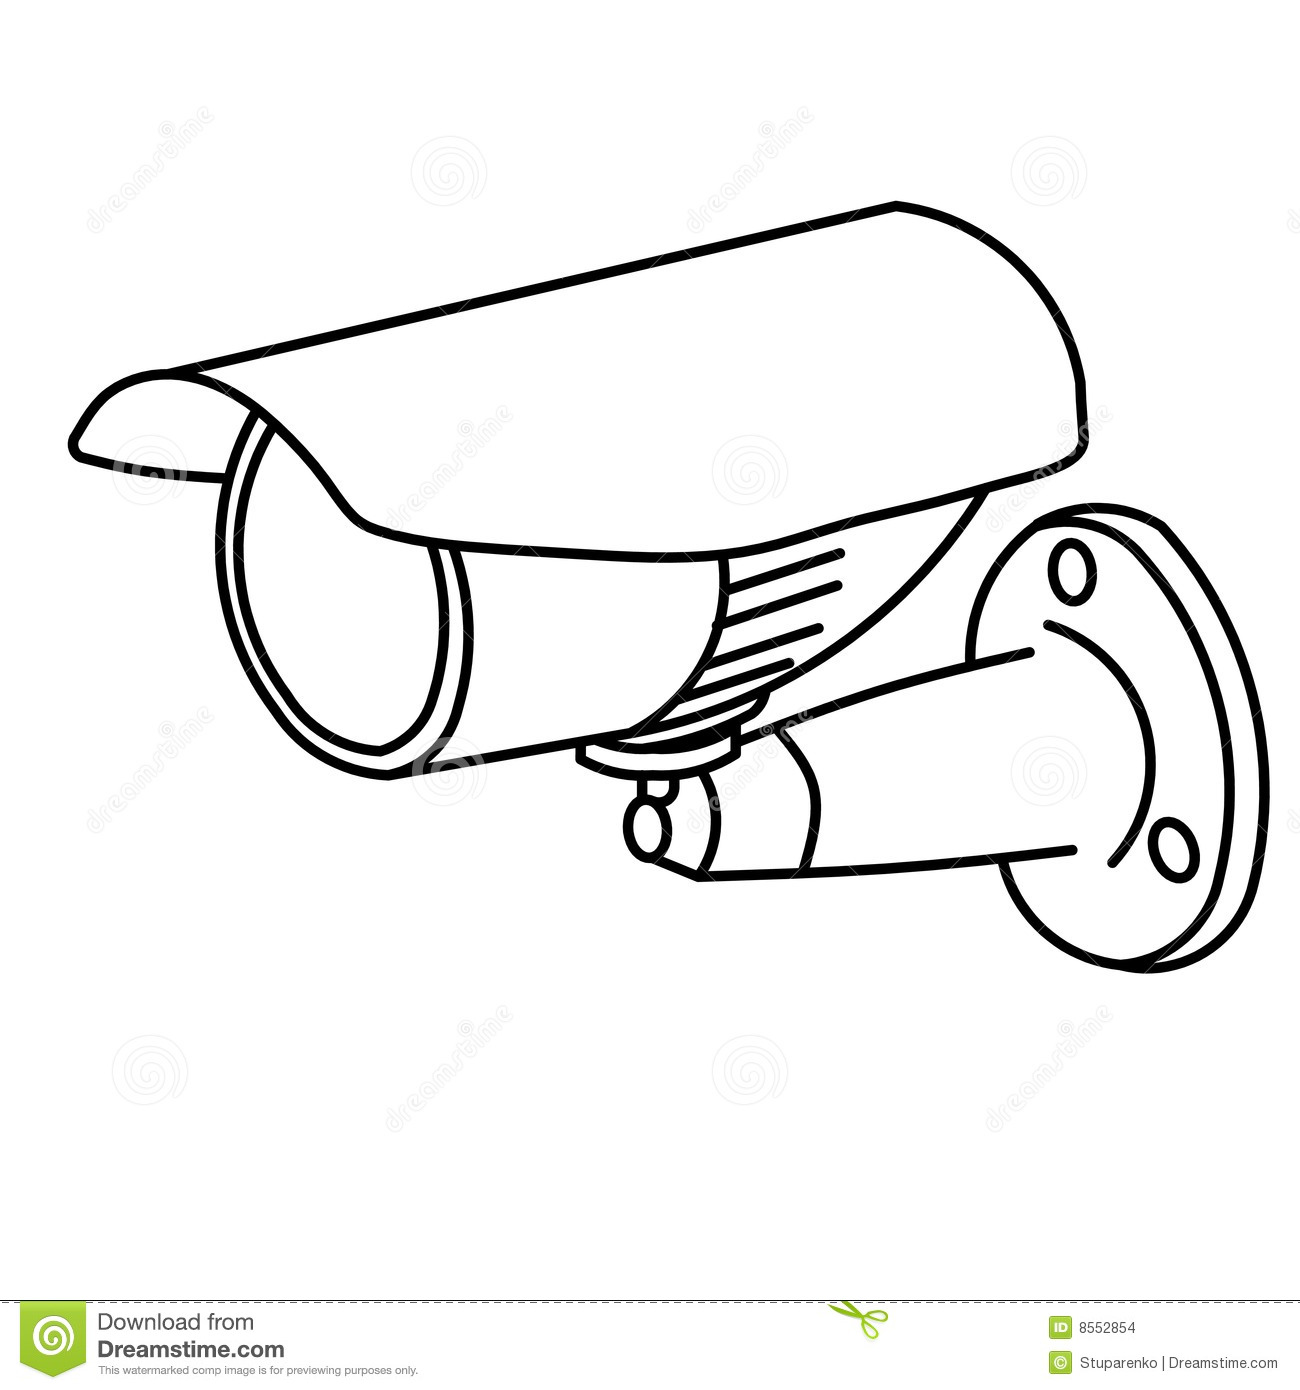 Security camera stock illustration. Image of observe